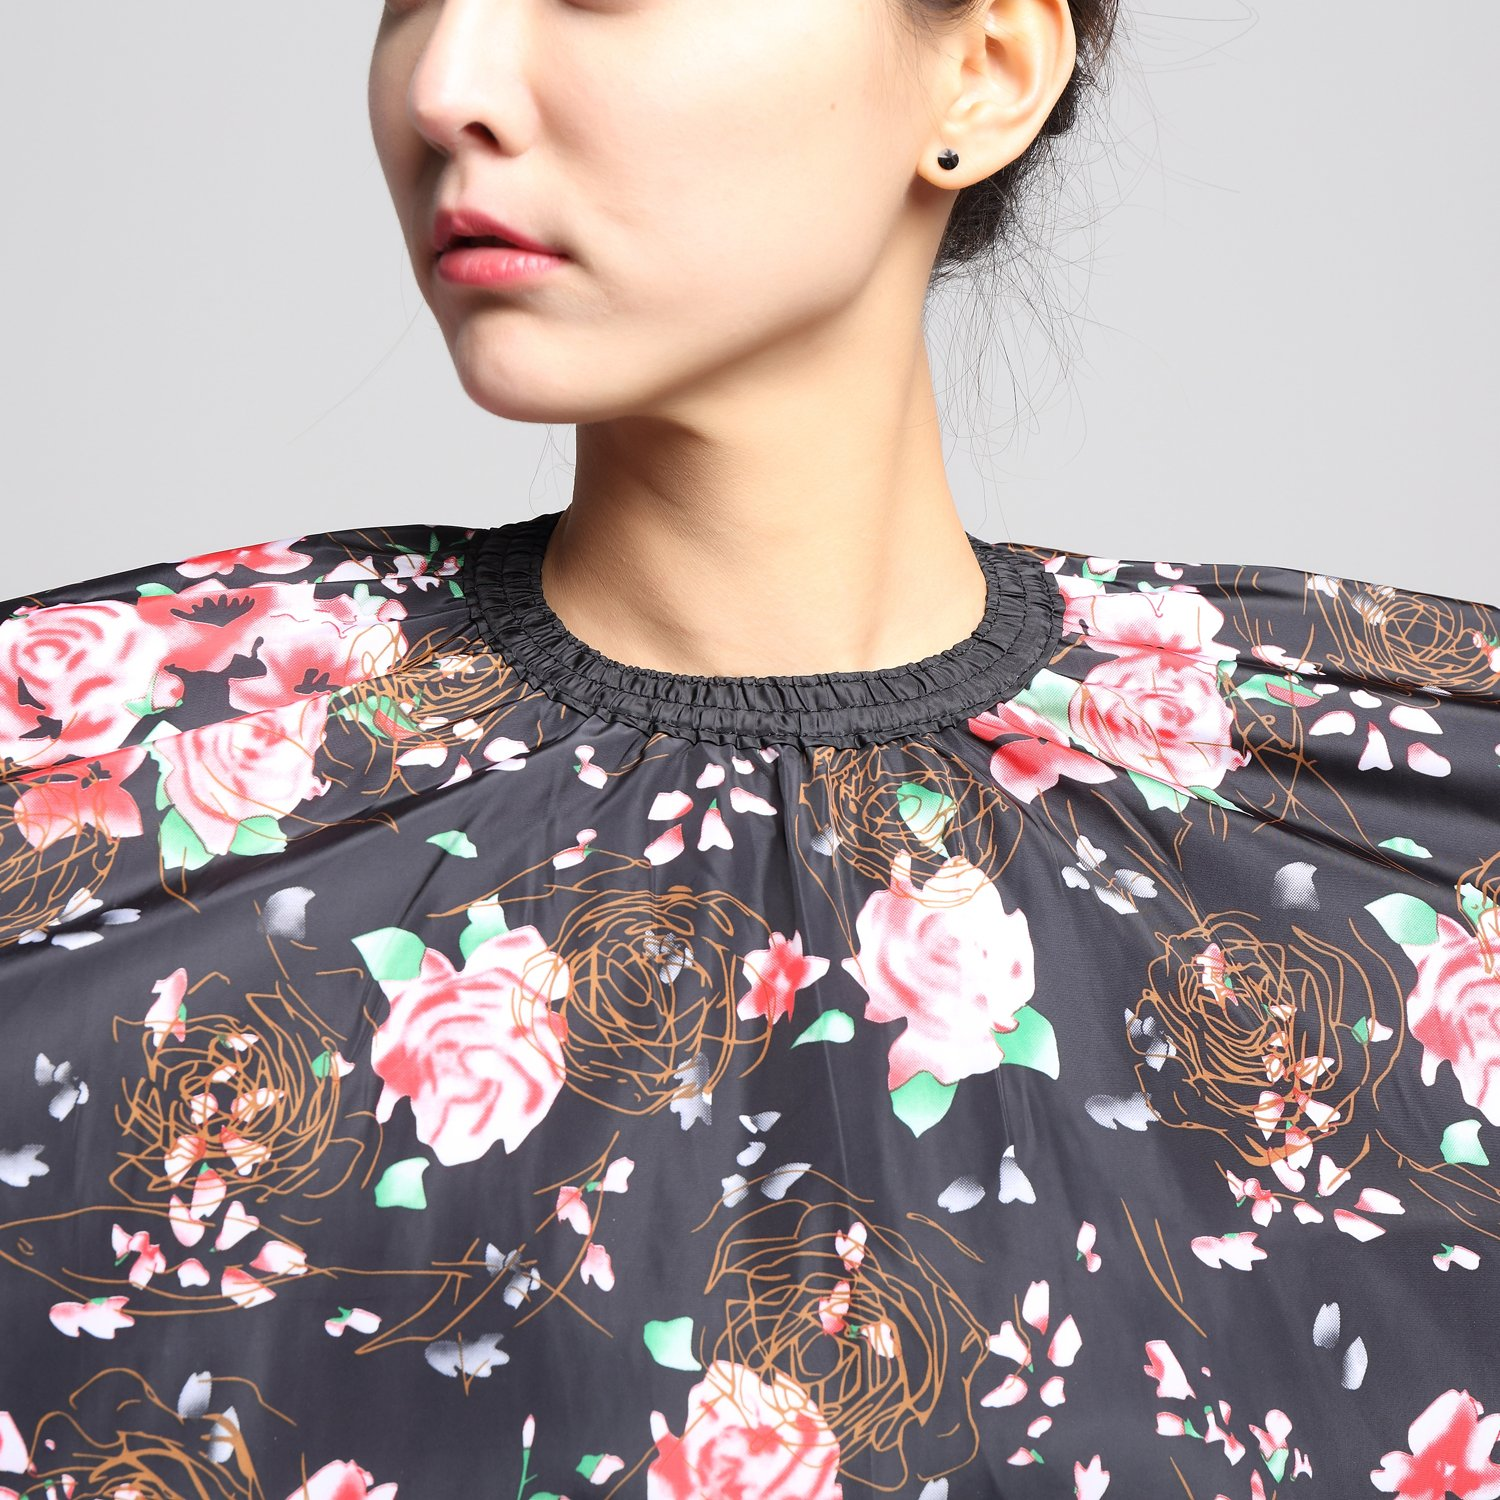 Salon Professional Hair Styling Cape,Colorfulife Hair Cutting Rose Flower Bronzing Waterproof Hairdresser Wai Cloth Barber Gown Hairdressing Wrap,55''x63'' K064 (Rose) by Colorfulife (Image #6)